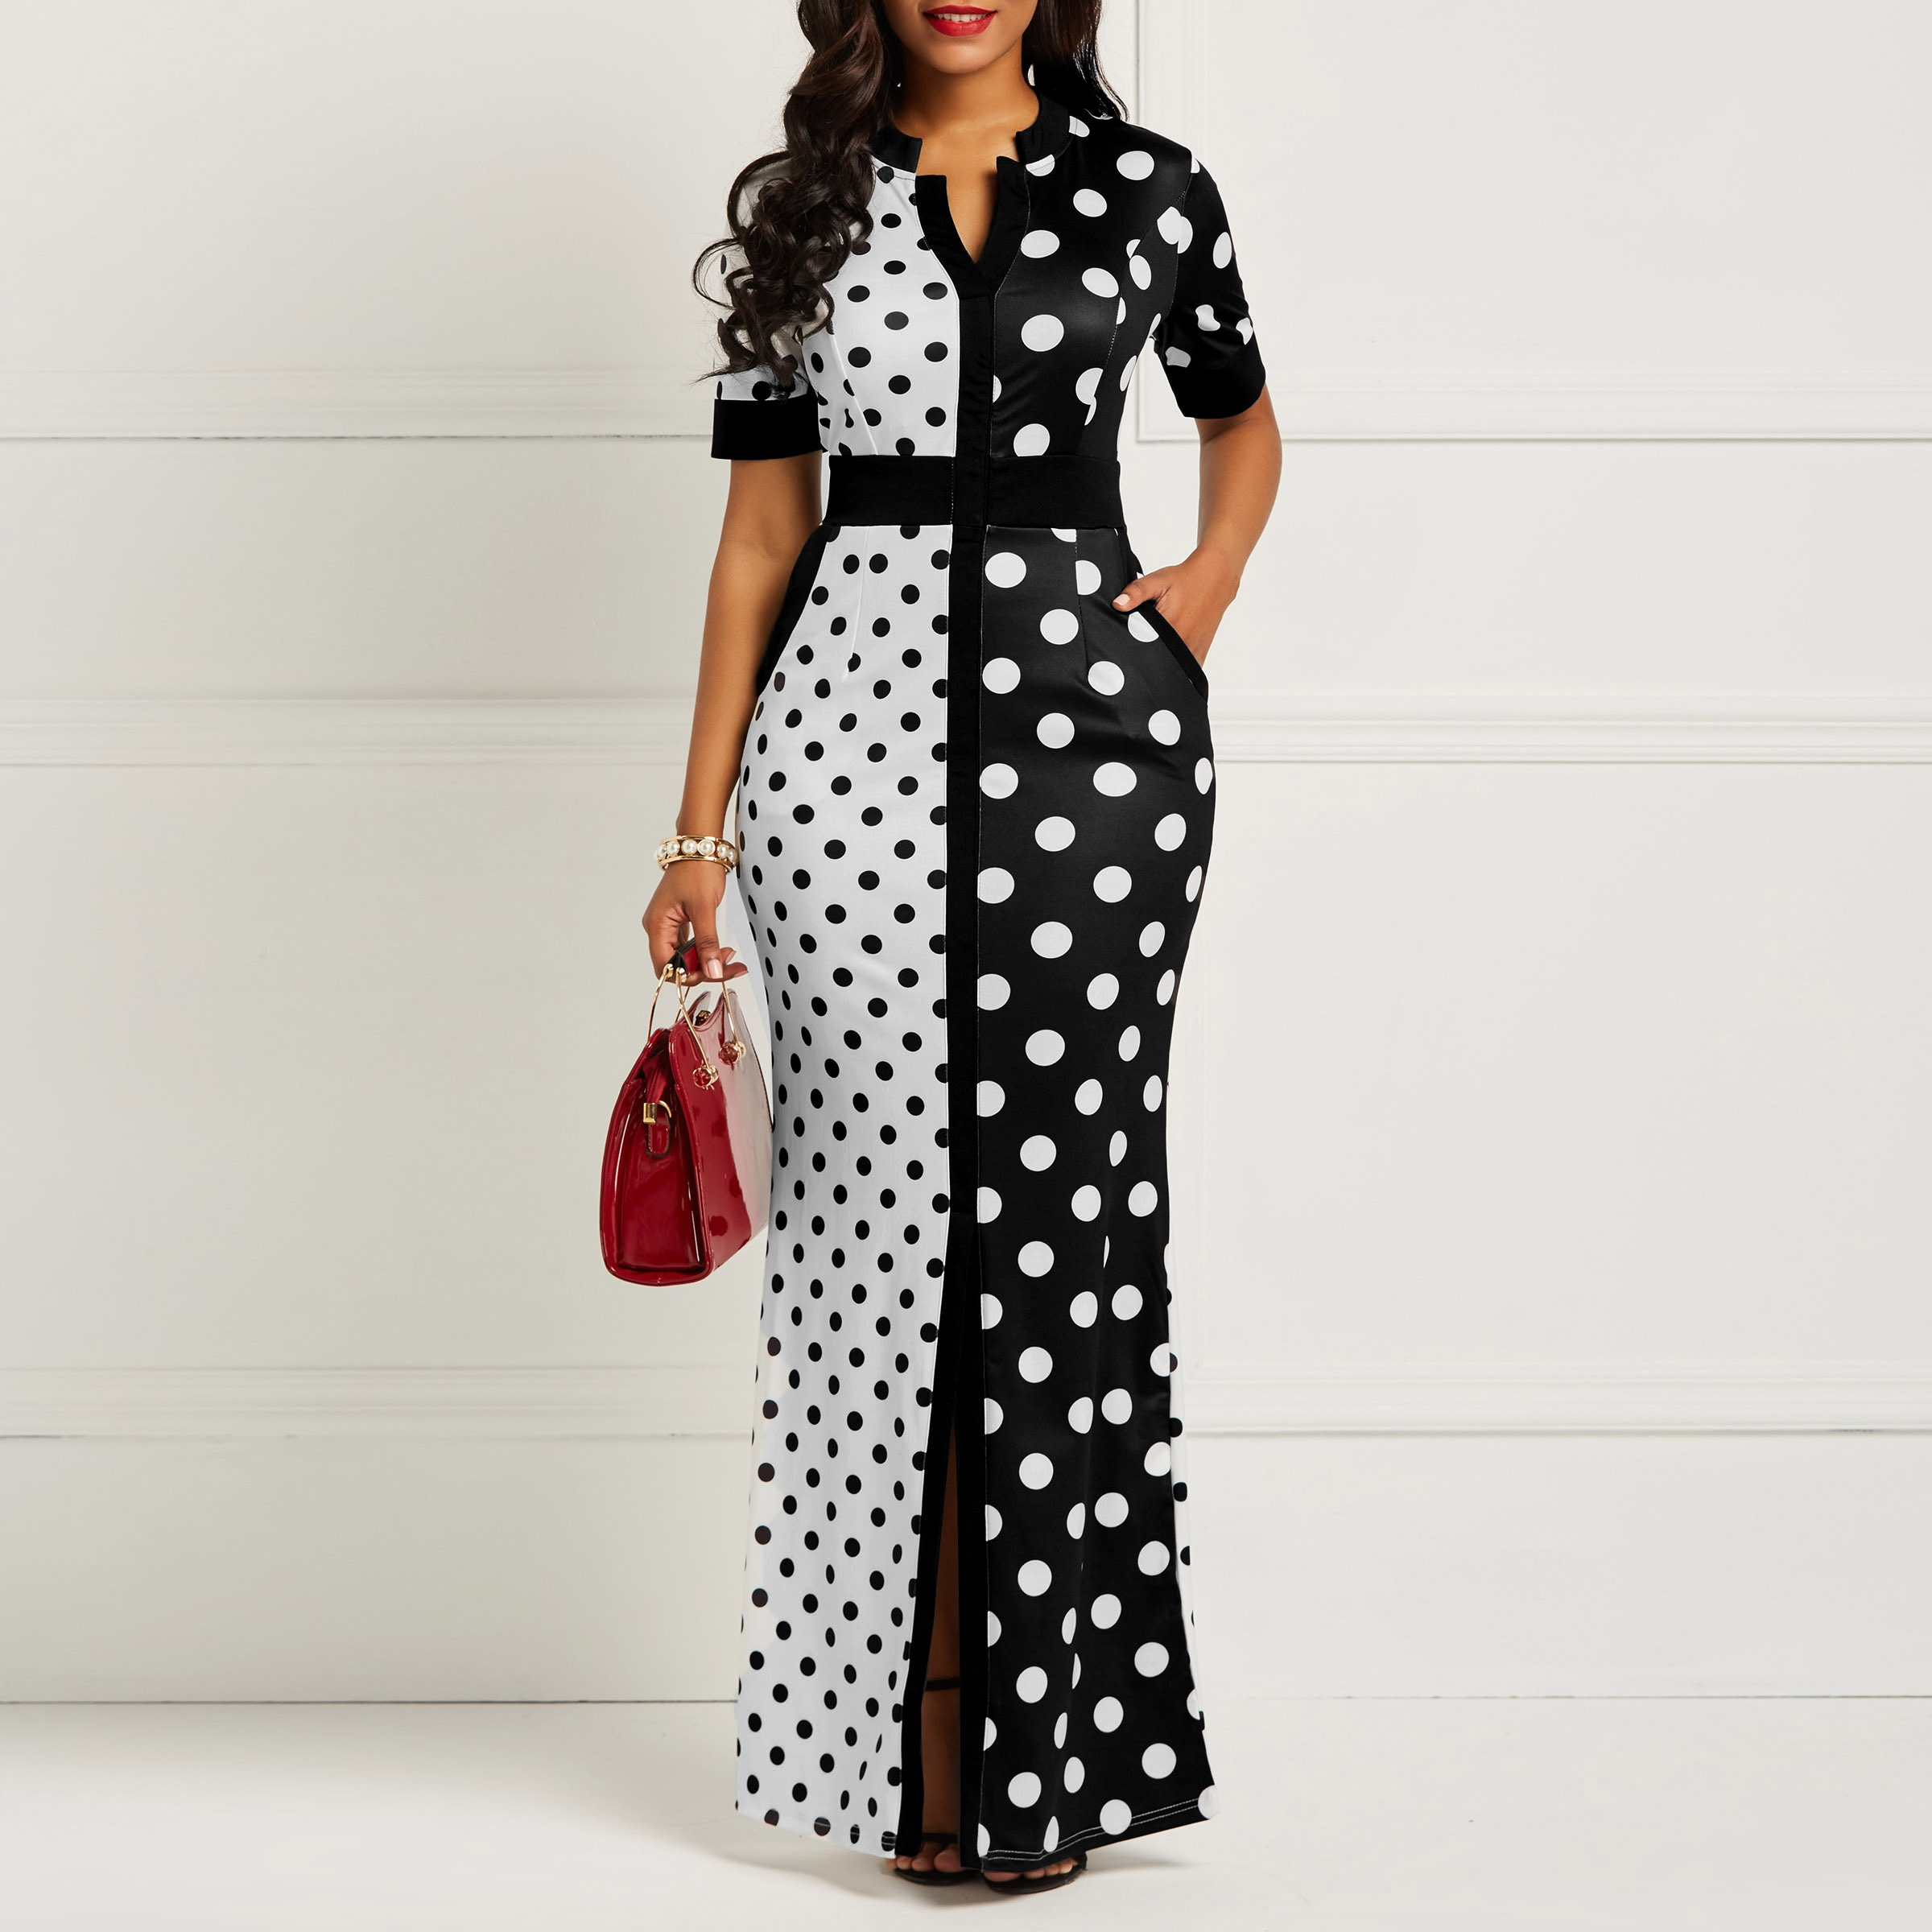 Clocolor African Dress Vintage Polka Dot White Black Printed Retro Bodycon Women Summer Short Sleeve Plus Size Long maxi Dress floral chiffon dress long sleeve